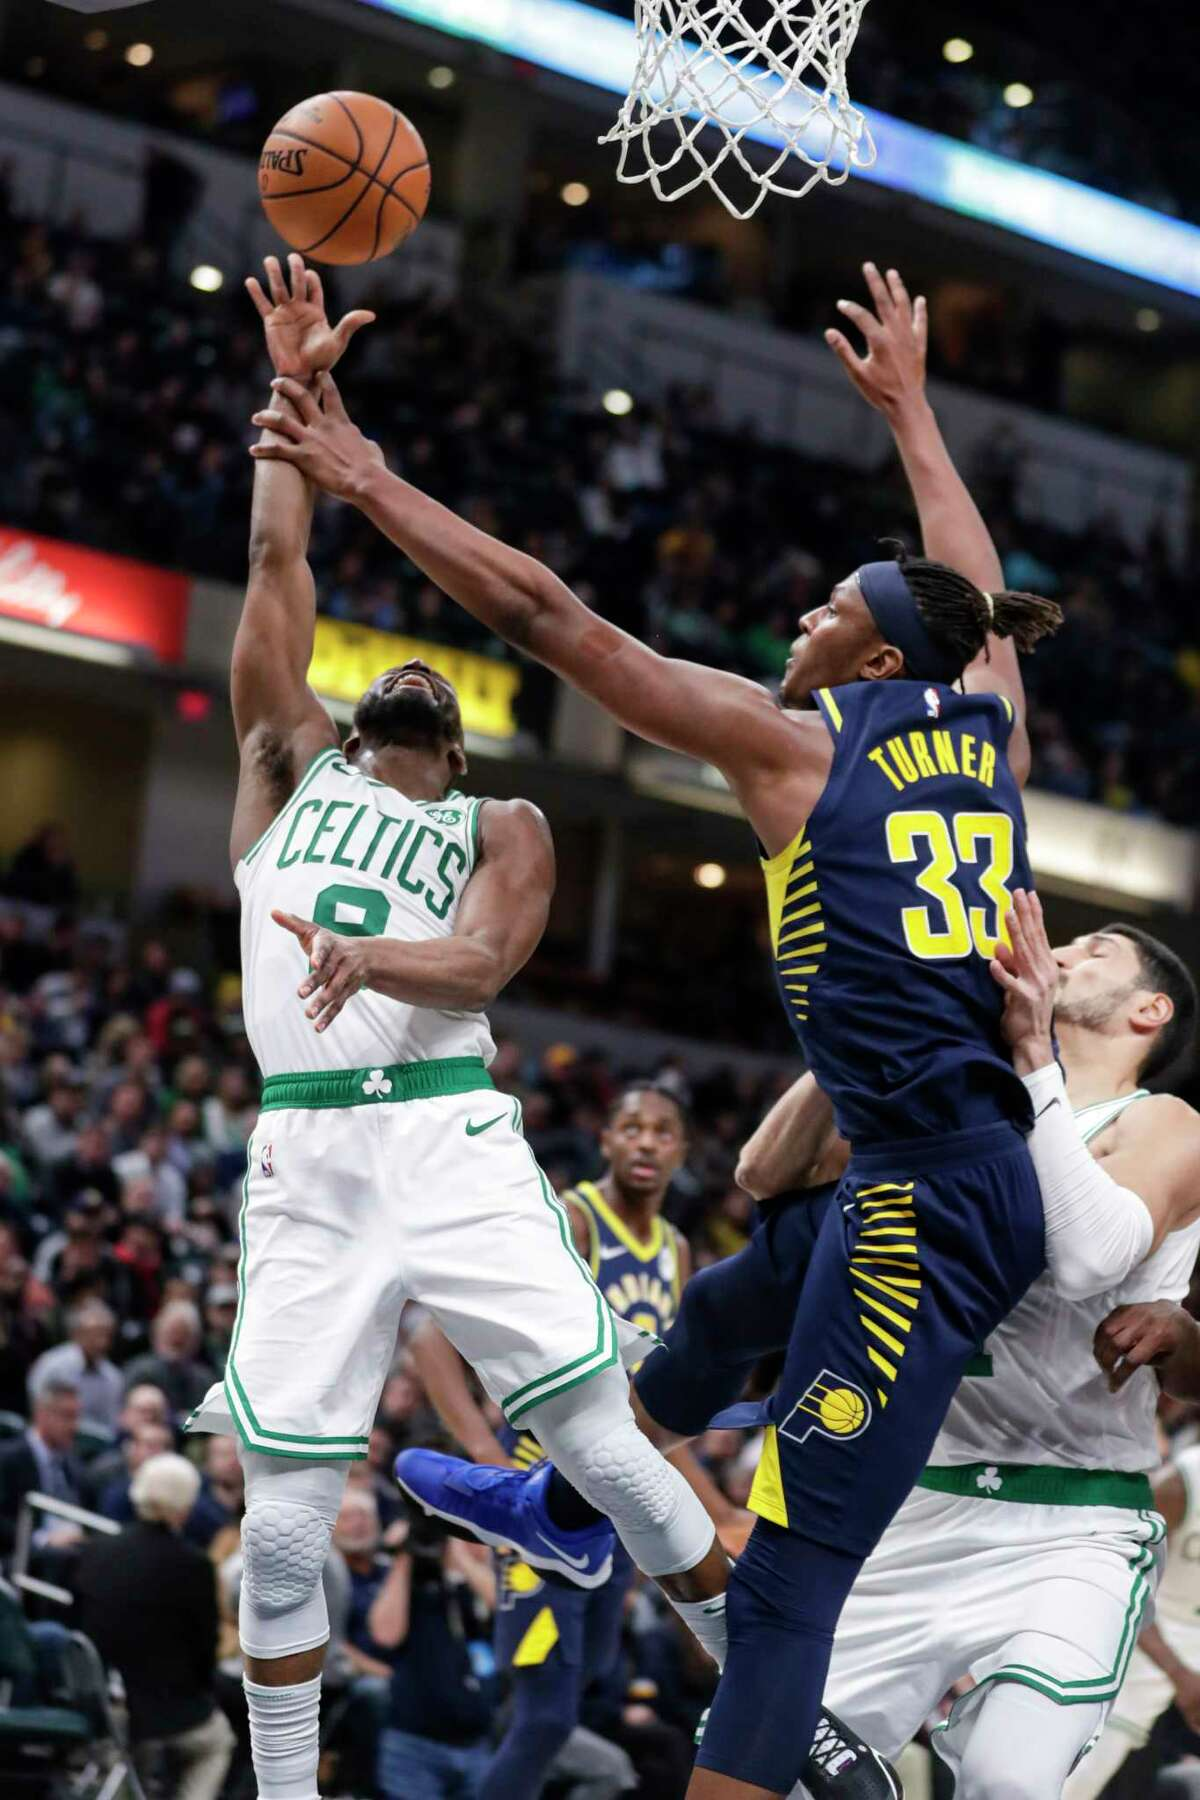 Indiana Pacers center Myles Turner (33) fouls Boston Celtics guard Kemba Walker (8) as he shoots during the second half of an NBA basketball game in Indianapolis, Wednesday, Dec. 11, 2019. The Pacers defeated the Celtics 122-117. (AP Photo/Michael Conroy)